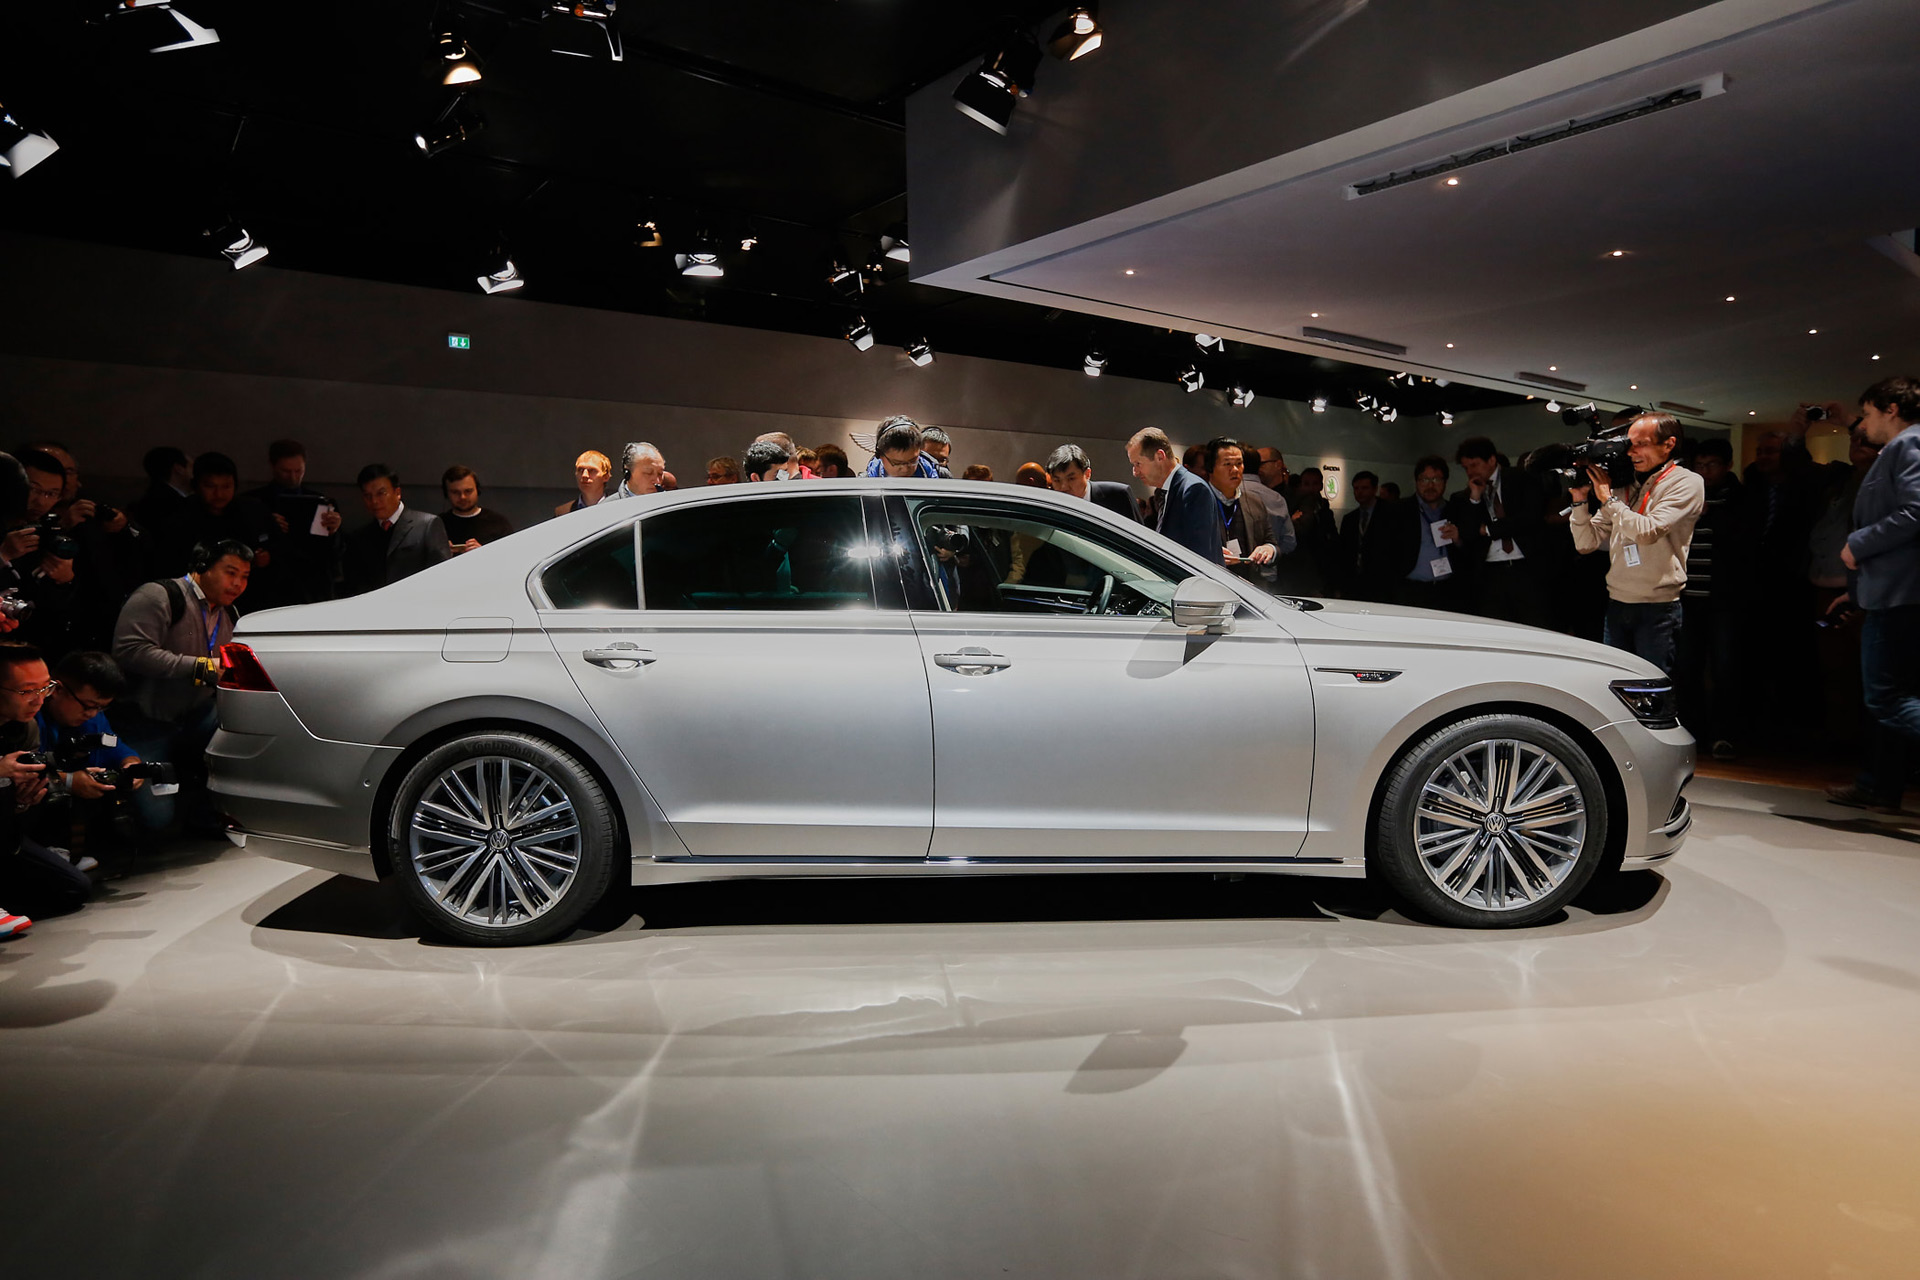 VW Phideon luxury sedan revealed, destined for China only